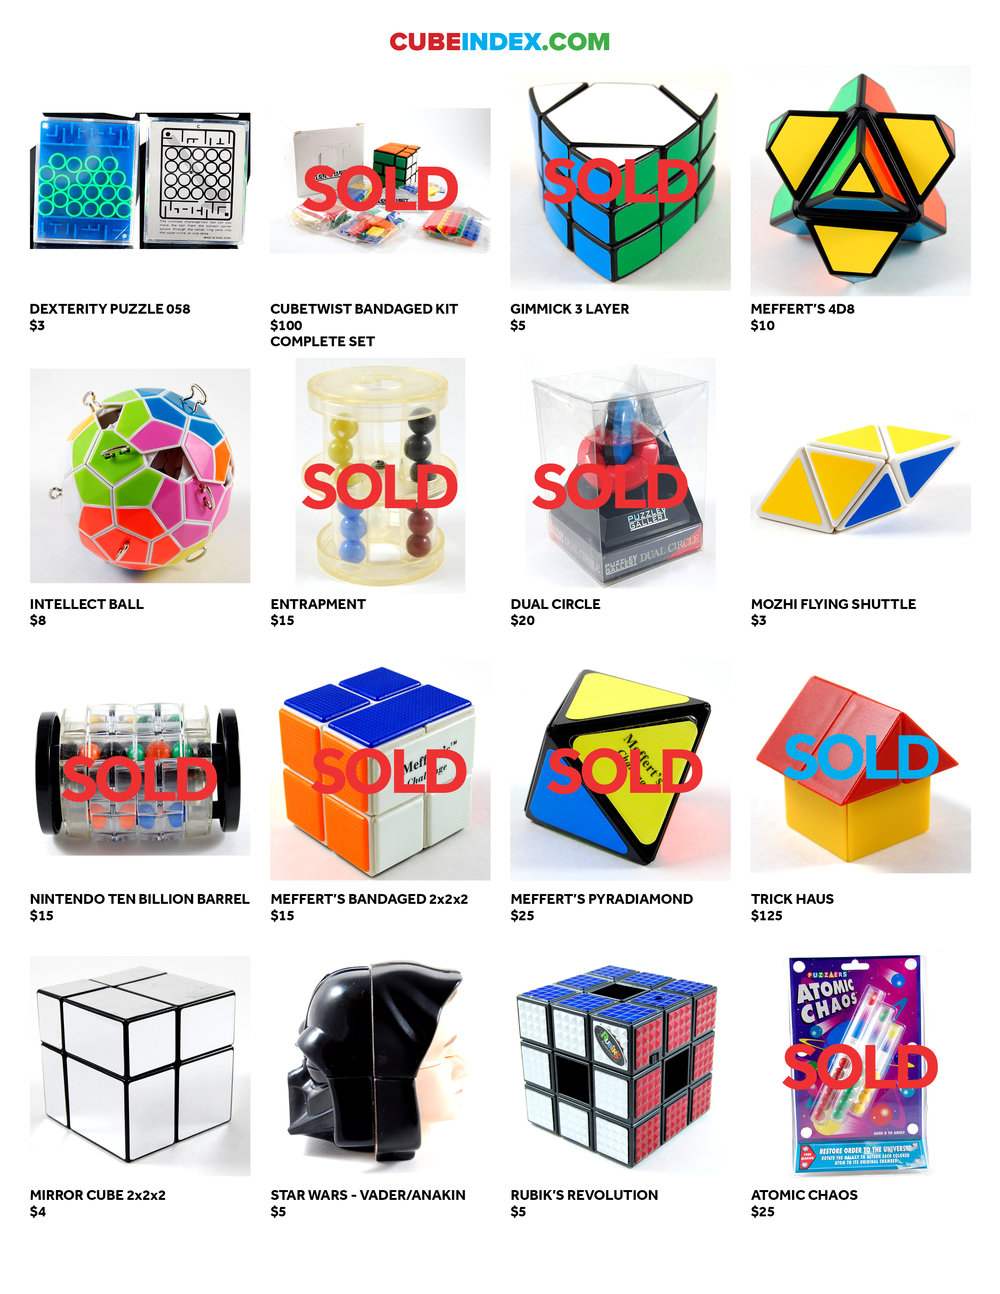 cube-index-for-sale-catalog-april-2017-v524.jpg